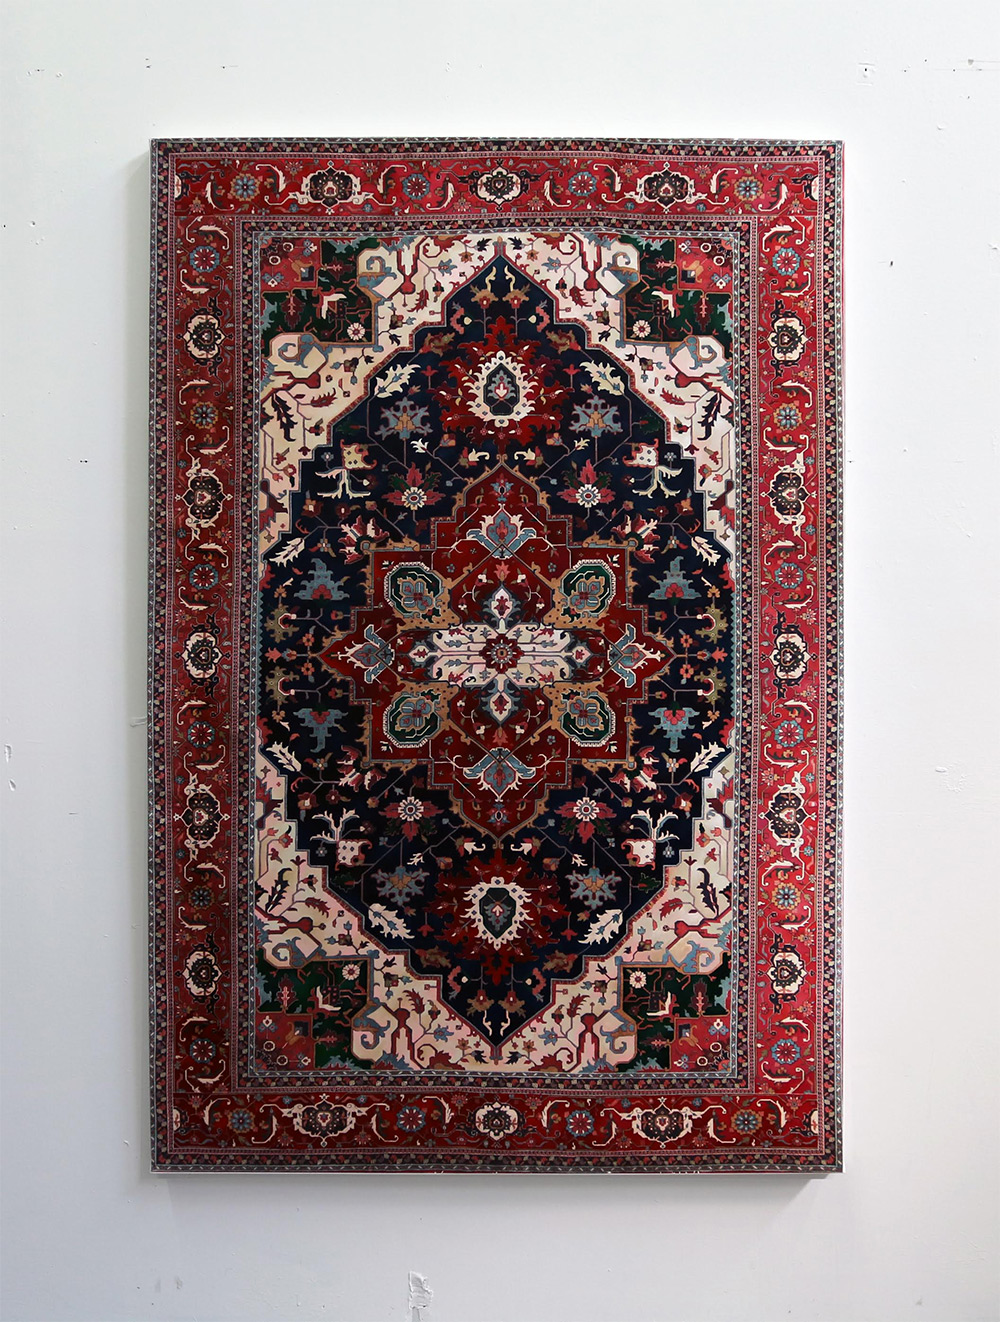 Elaborate Hand-Painted Persian Carpets by Jason Seife